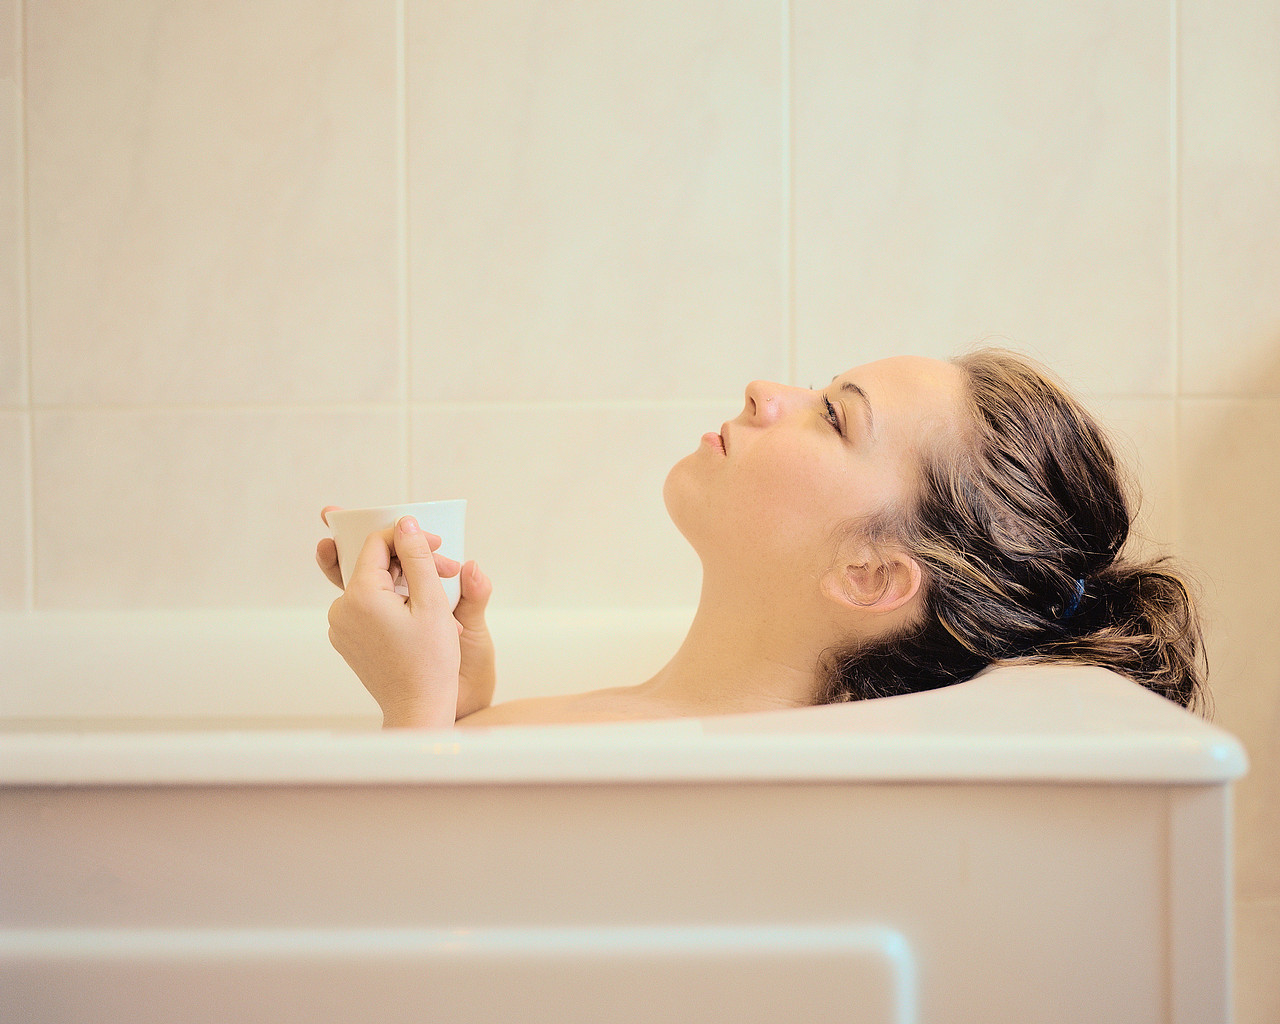 Woman Lying in a Bathtub Holding a Mug